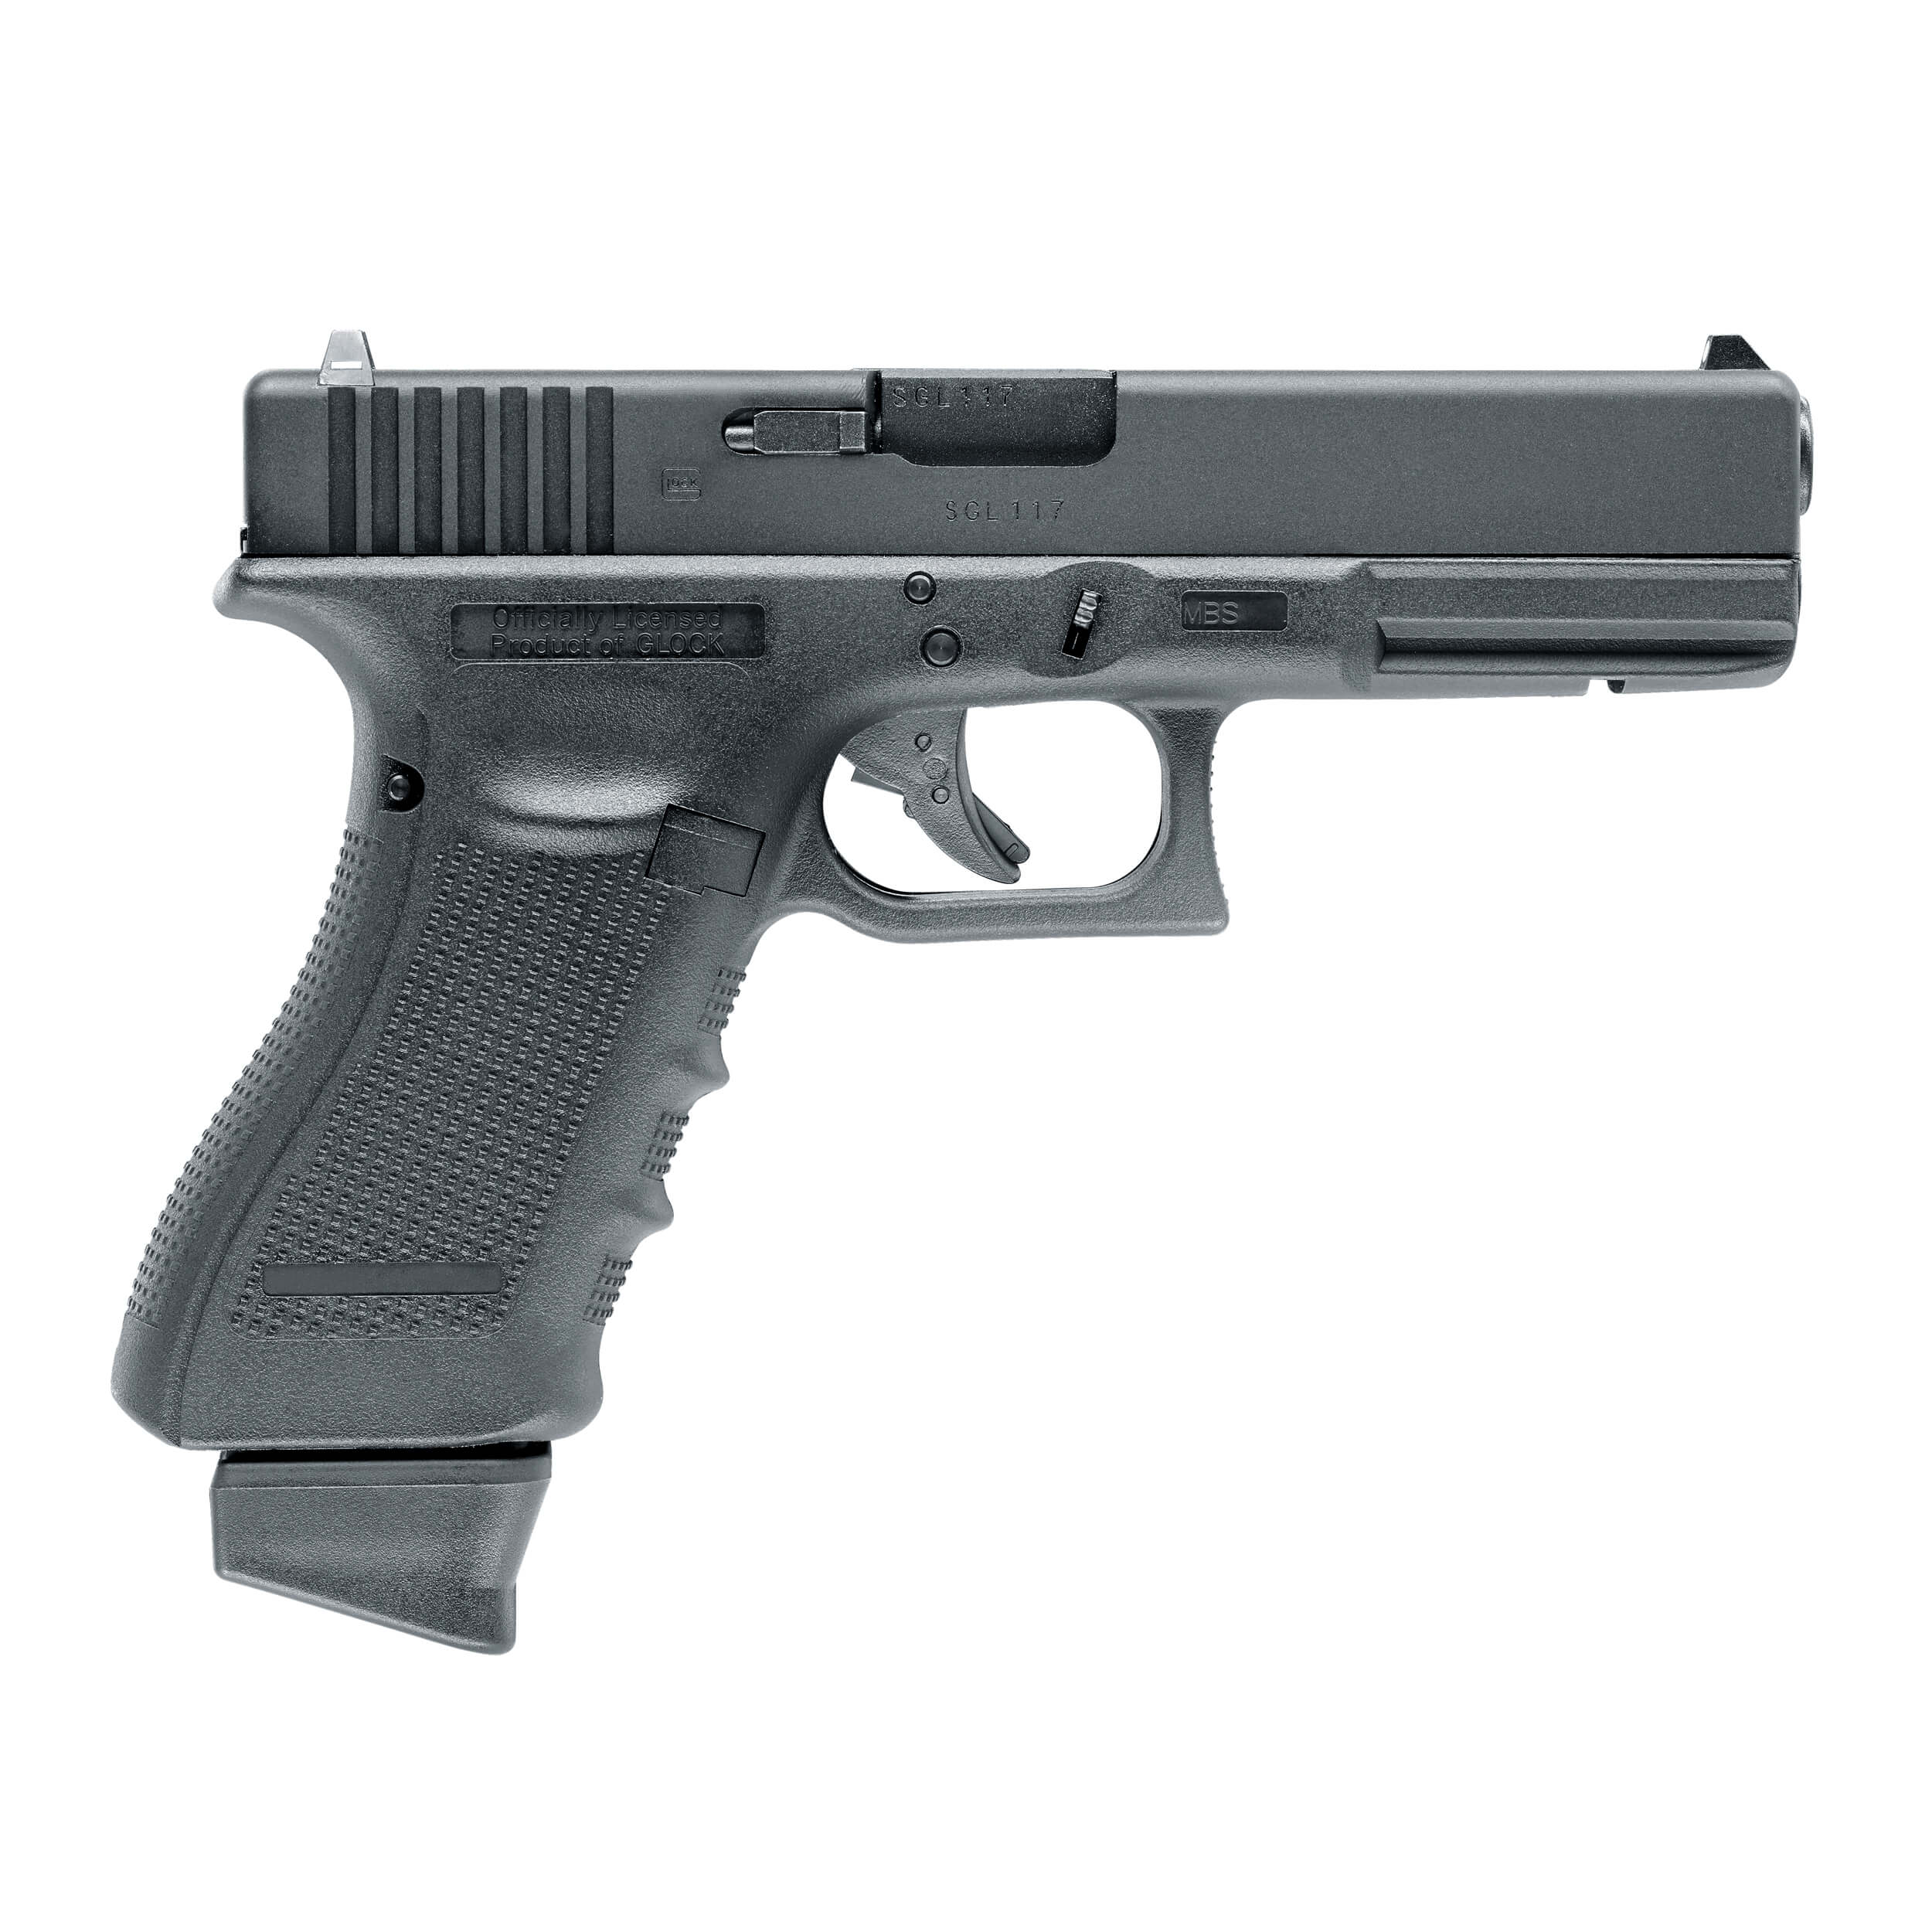 Airsoft GLOCK 17 Gen4 with metal slide and blowback CO2